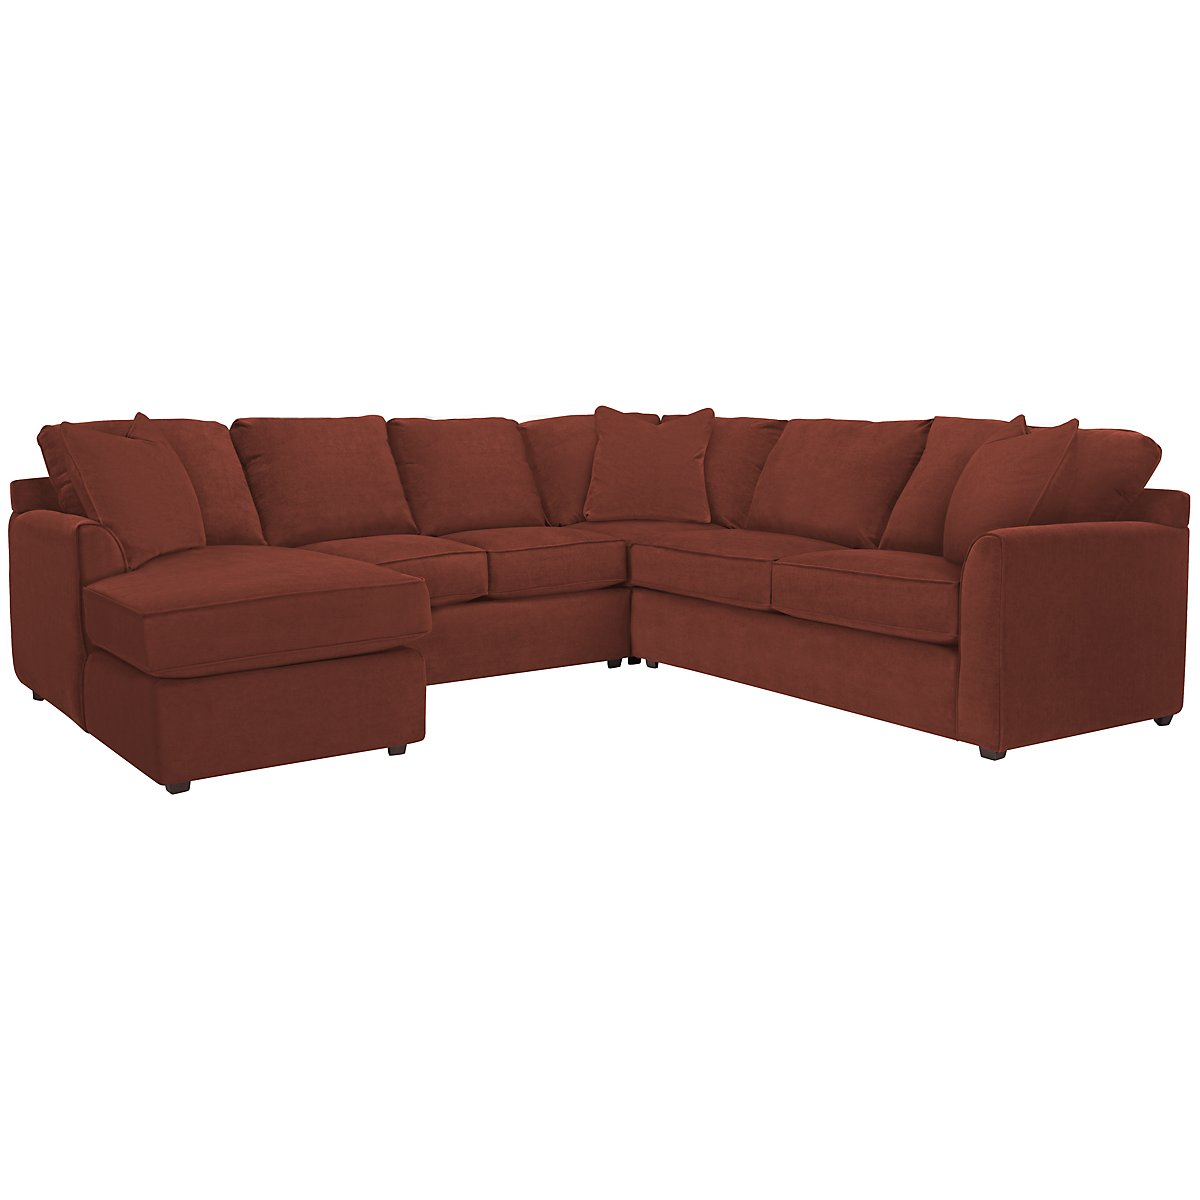 Express3 Red Microfiber Small Left Chaise Sectional